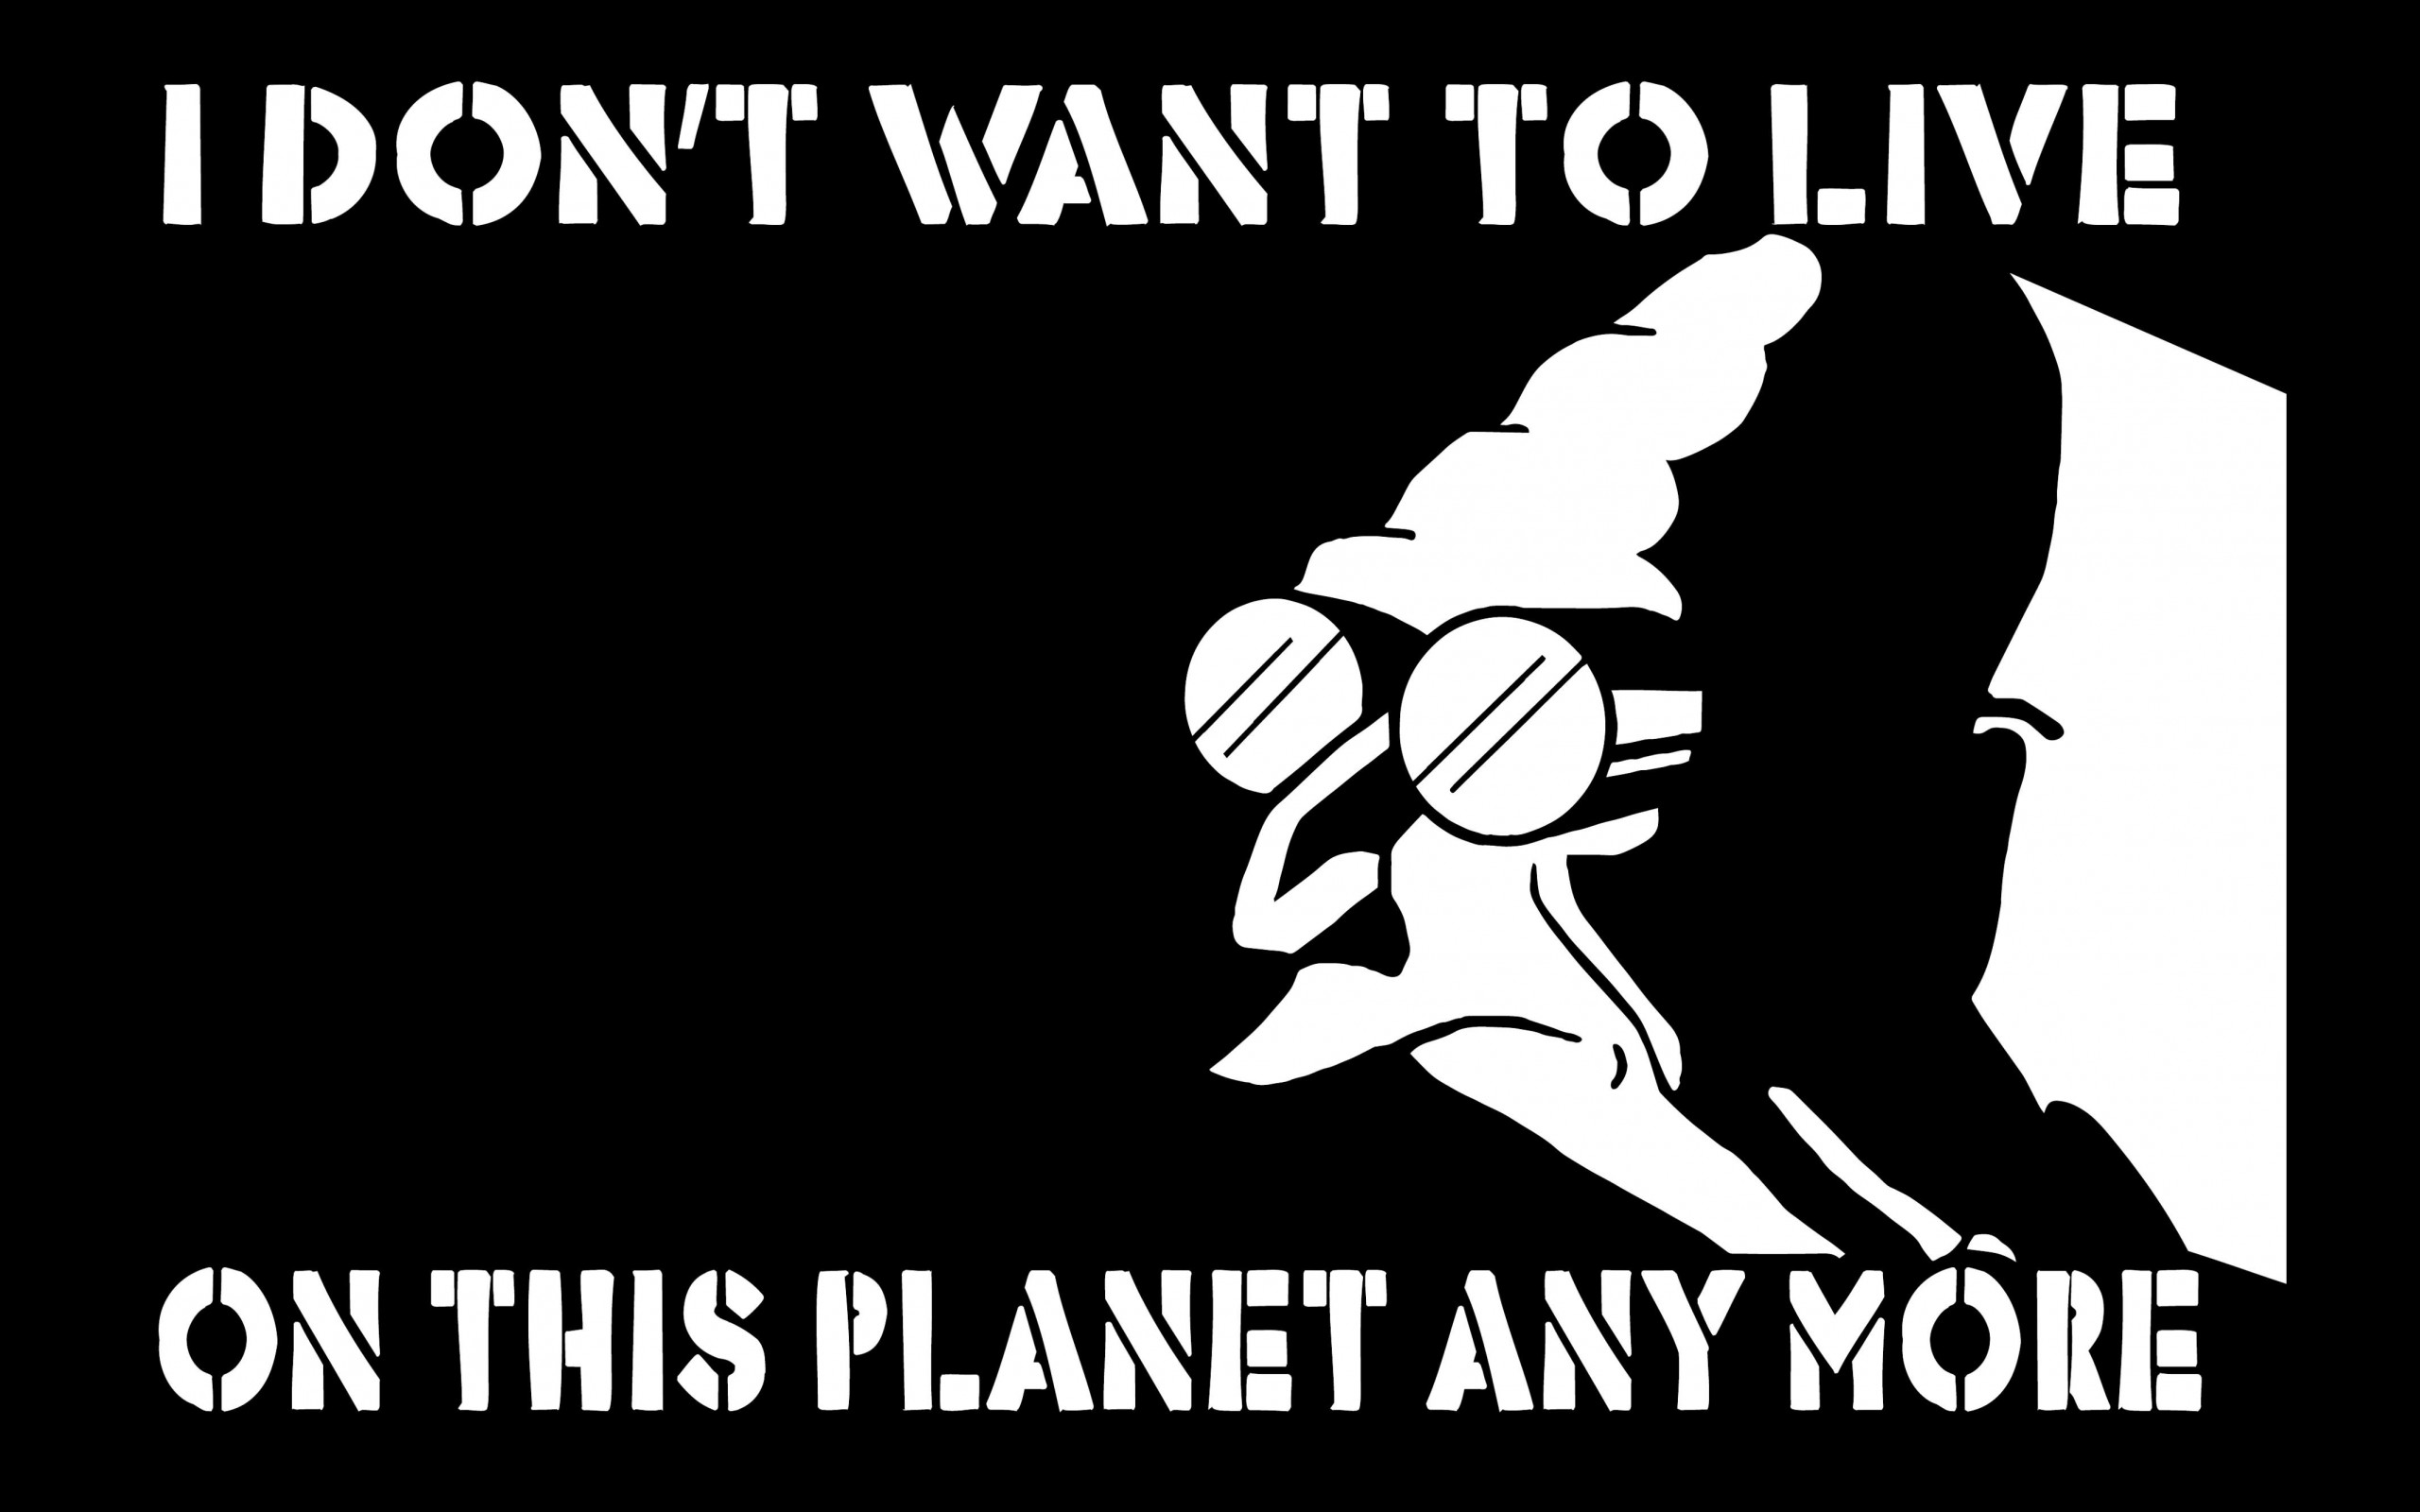 I Don't Want to Live on This Planet Anymore Wallpaper for Desktop 2560x1600